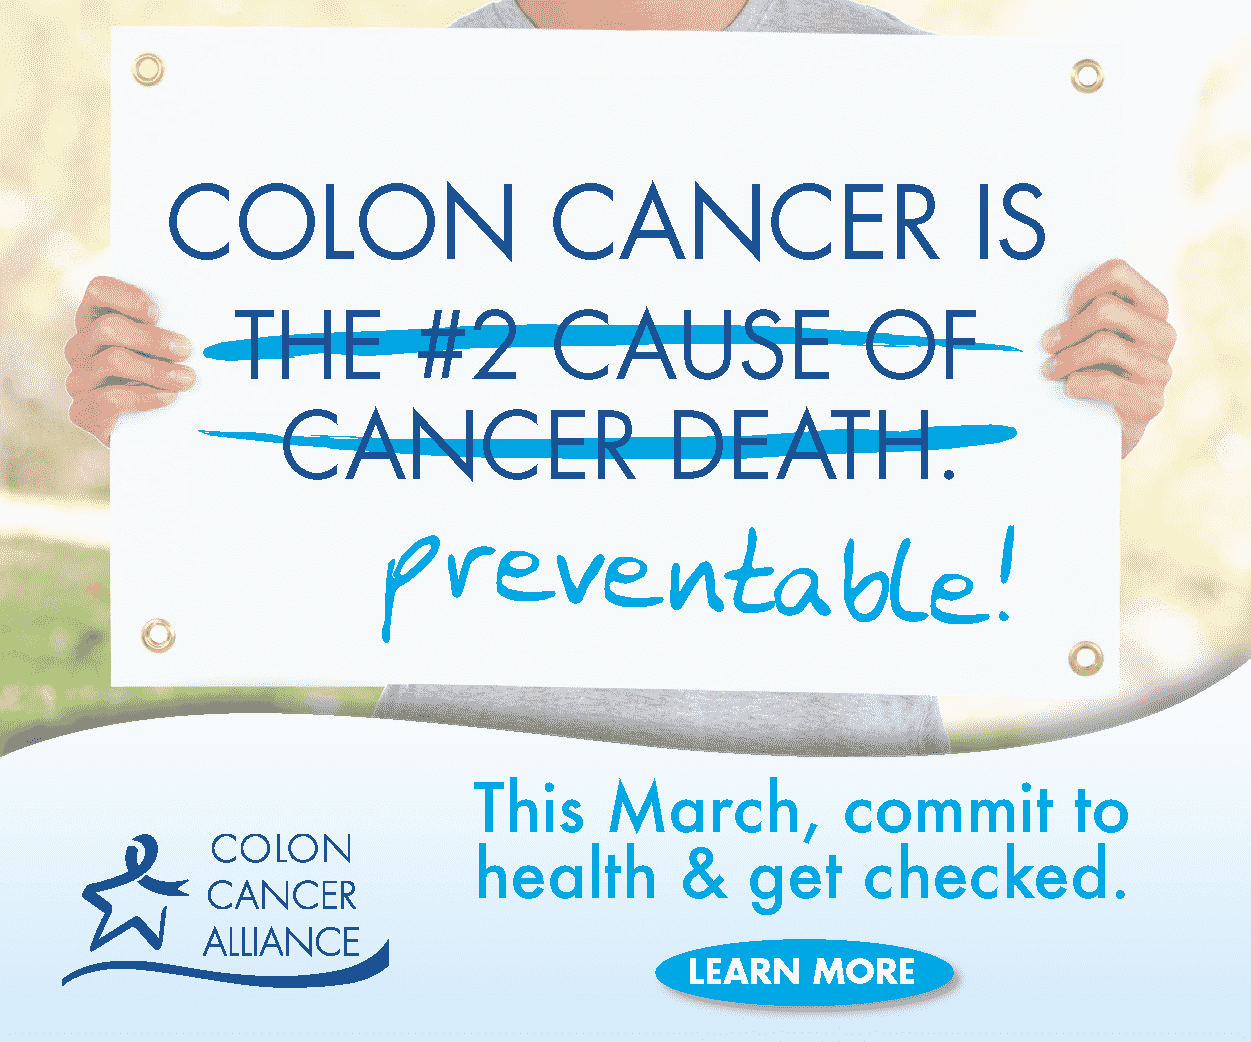 colon cancer Some of the most important home remedies for colon cancer include the use of garlic, blueberries, spinach, oregano, olive oil, ginger, salmon, and ginseng.